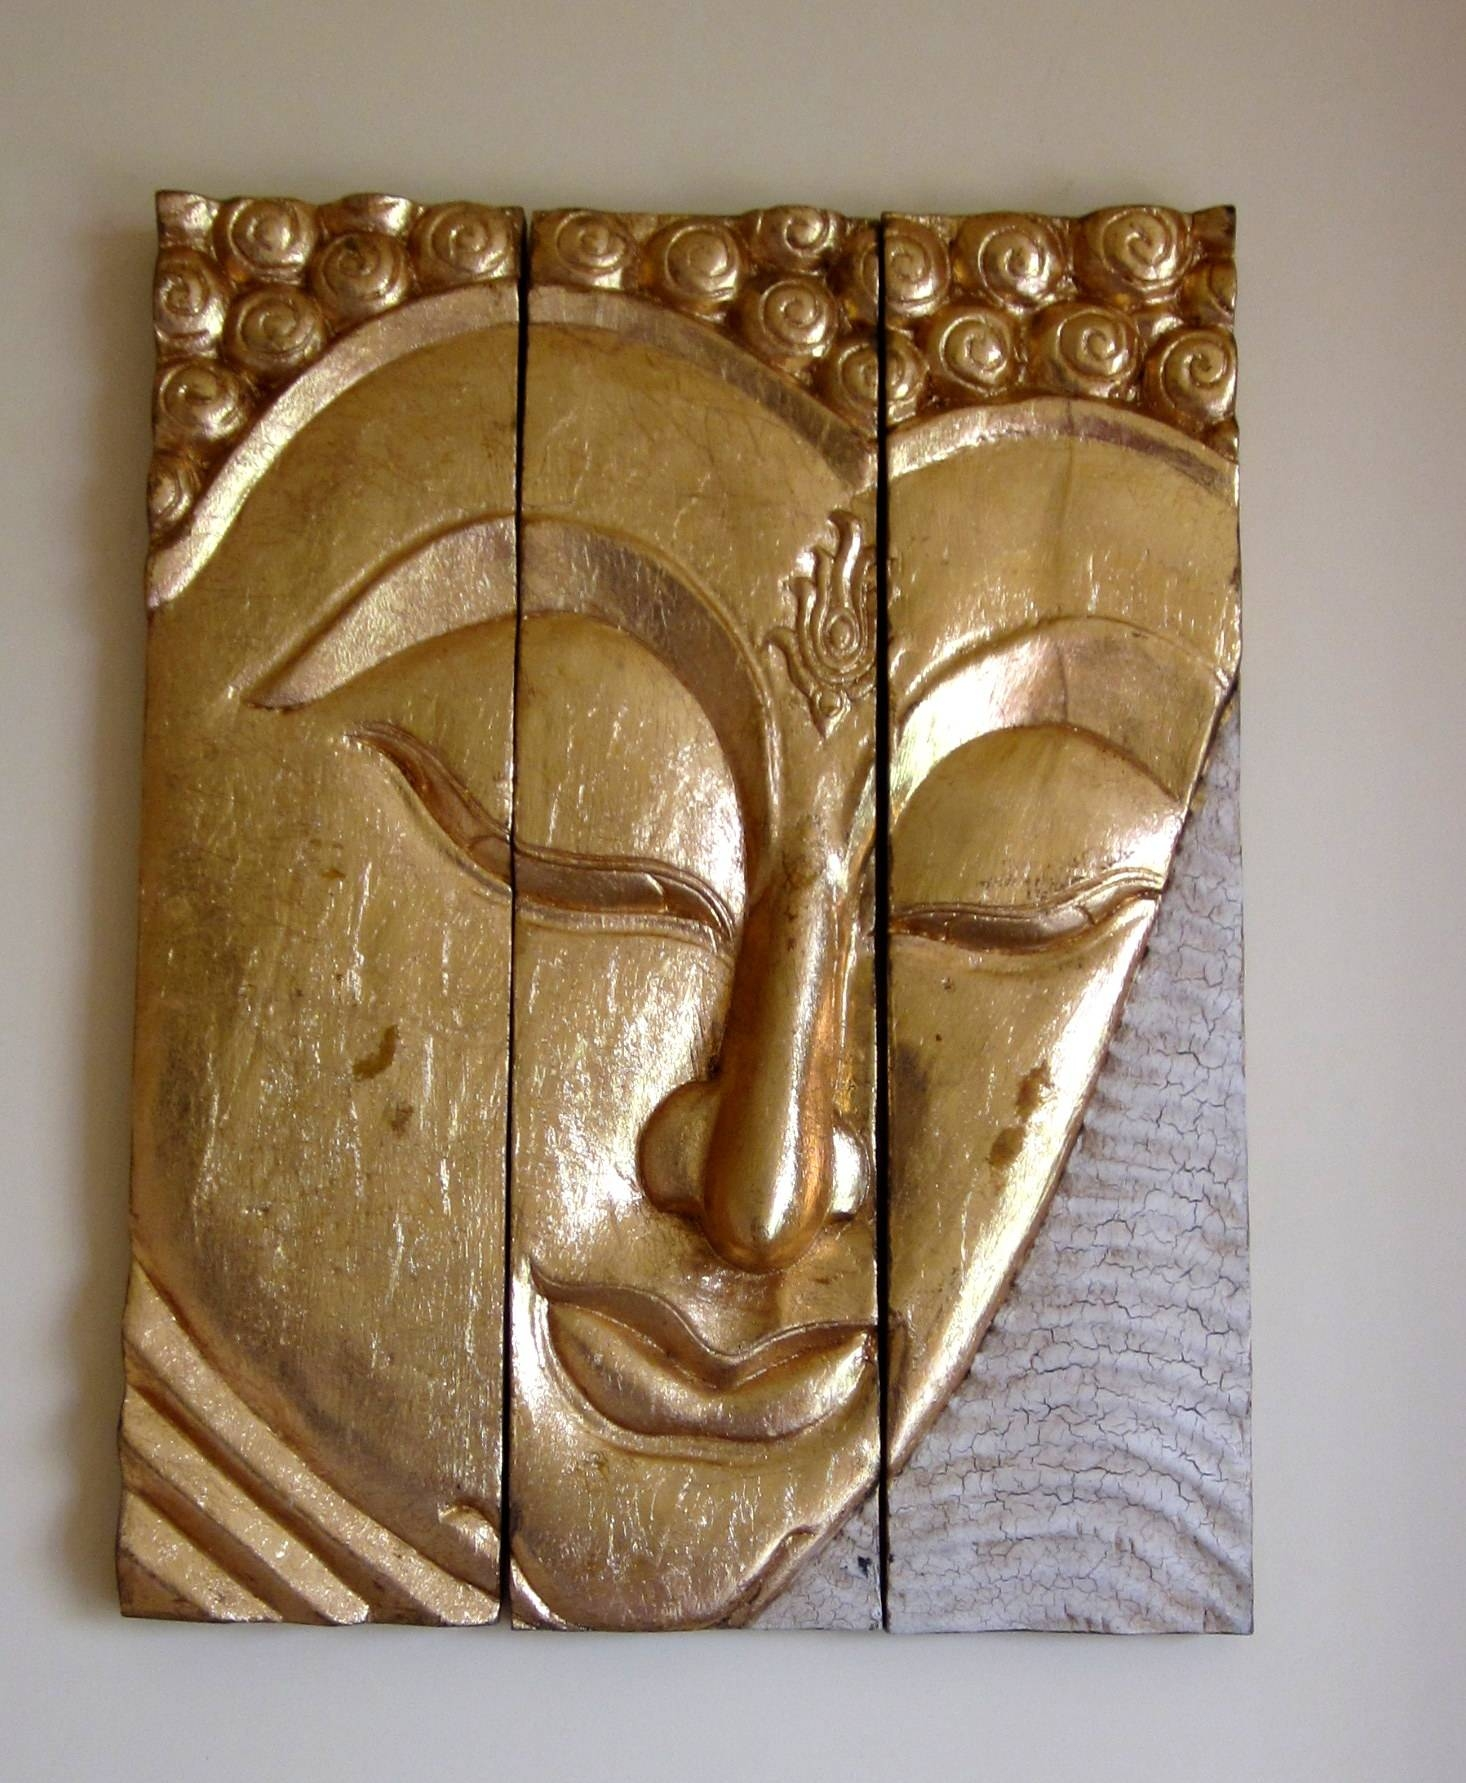 Photography Styling Challenge #3 – Wall Vignette | Myfoodtapestry Within Most Up To Date Buddha Metal Wall Art (View 14 of 20)